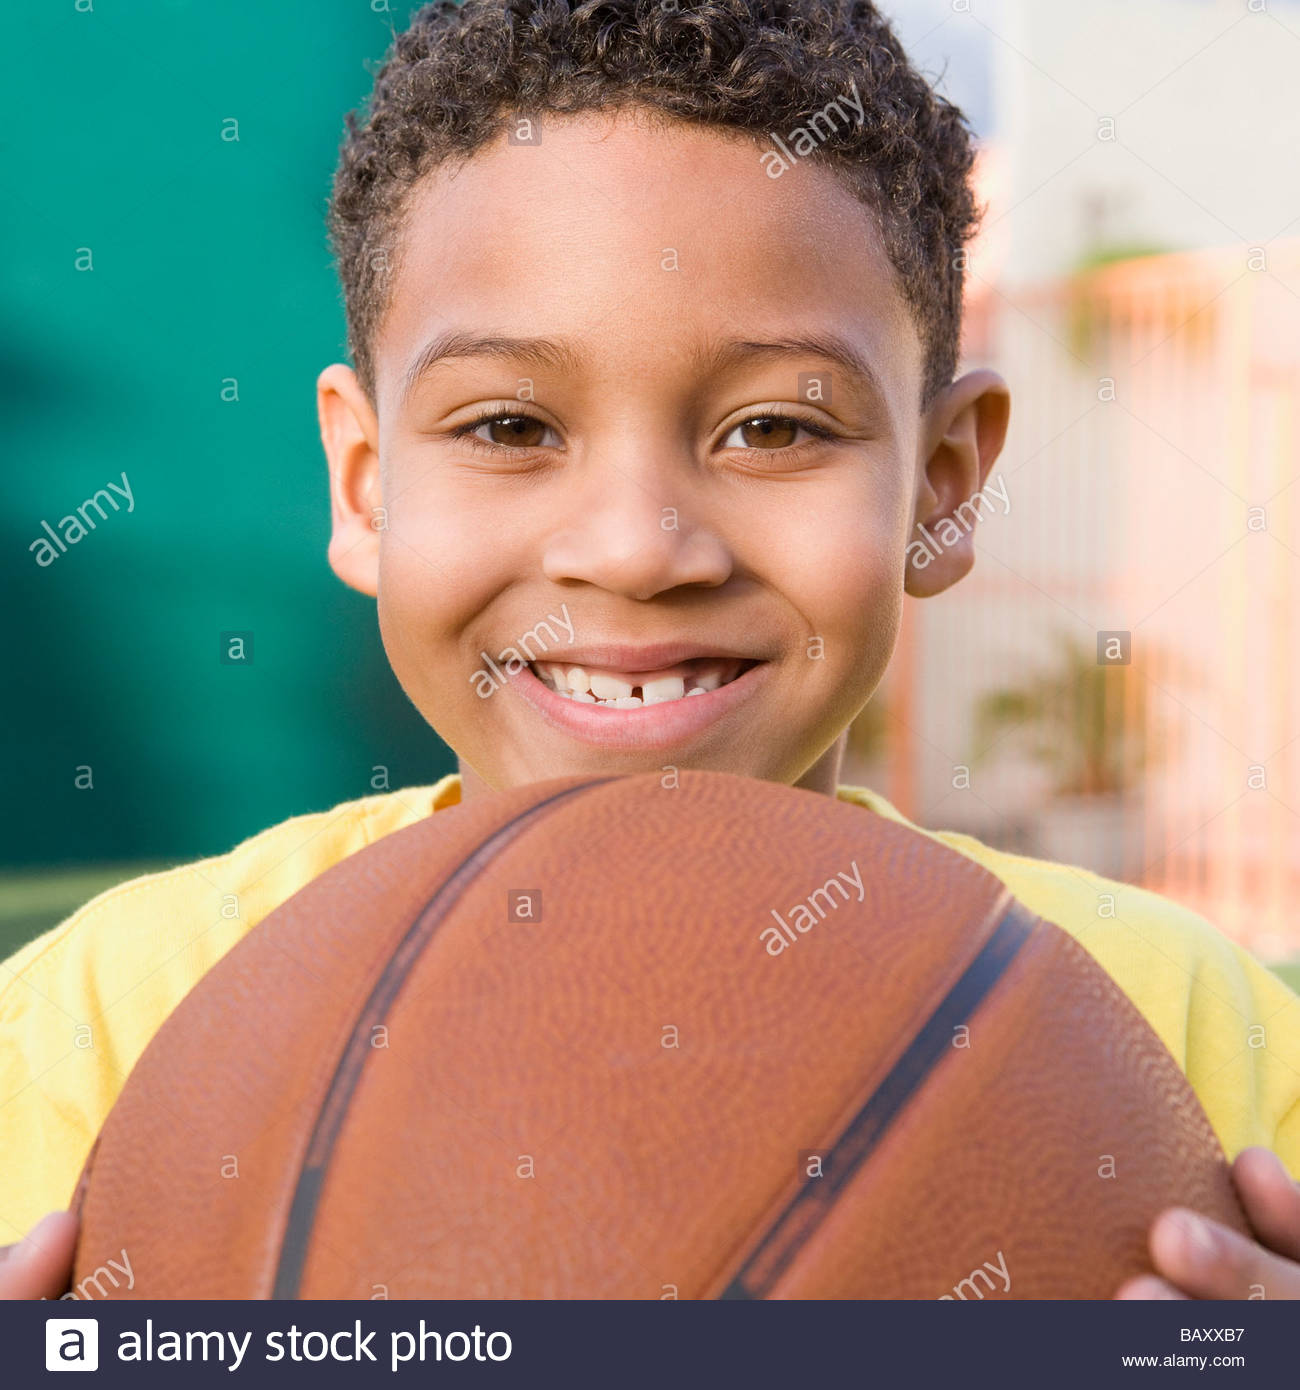 Smiling boy holding basketball - Stock Image